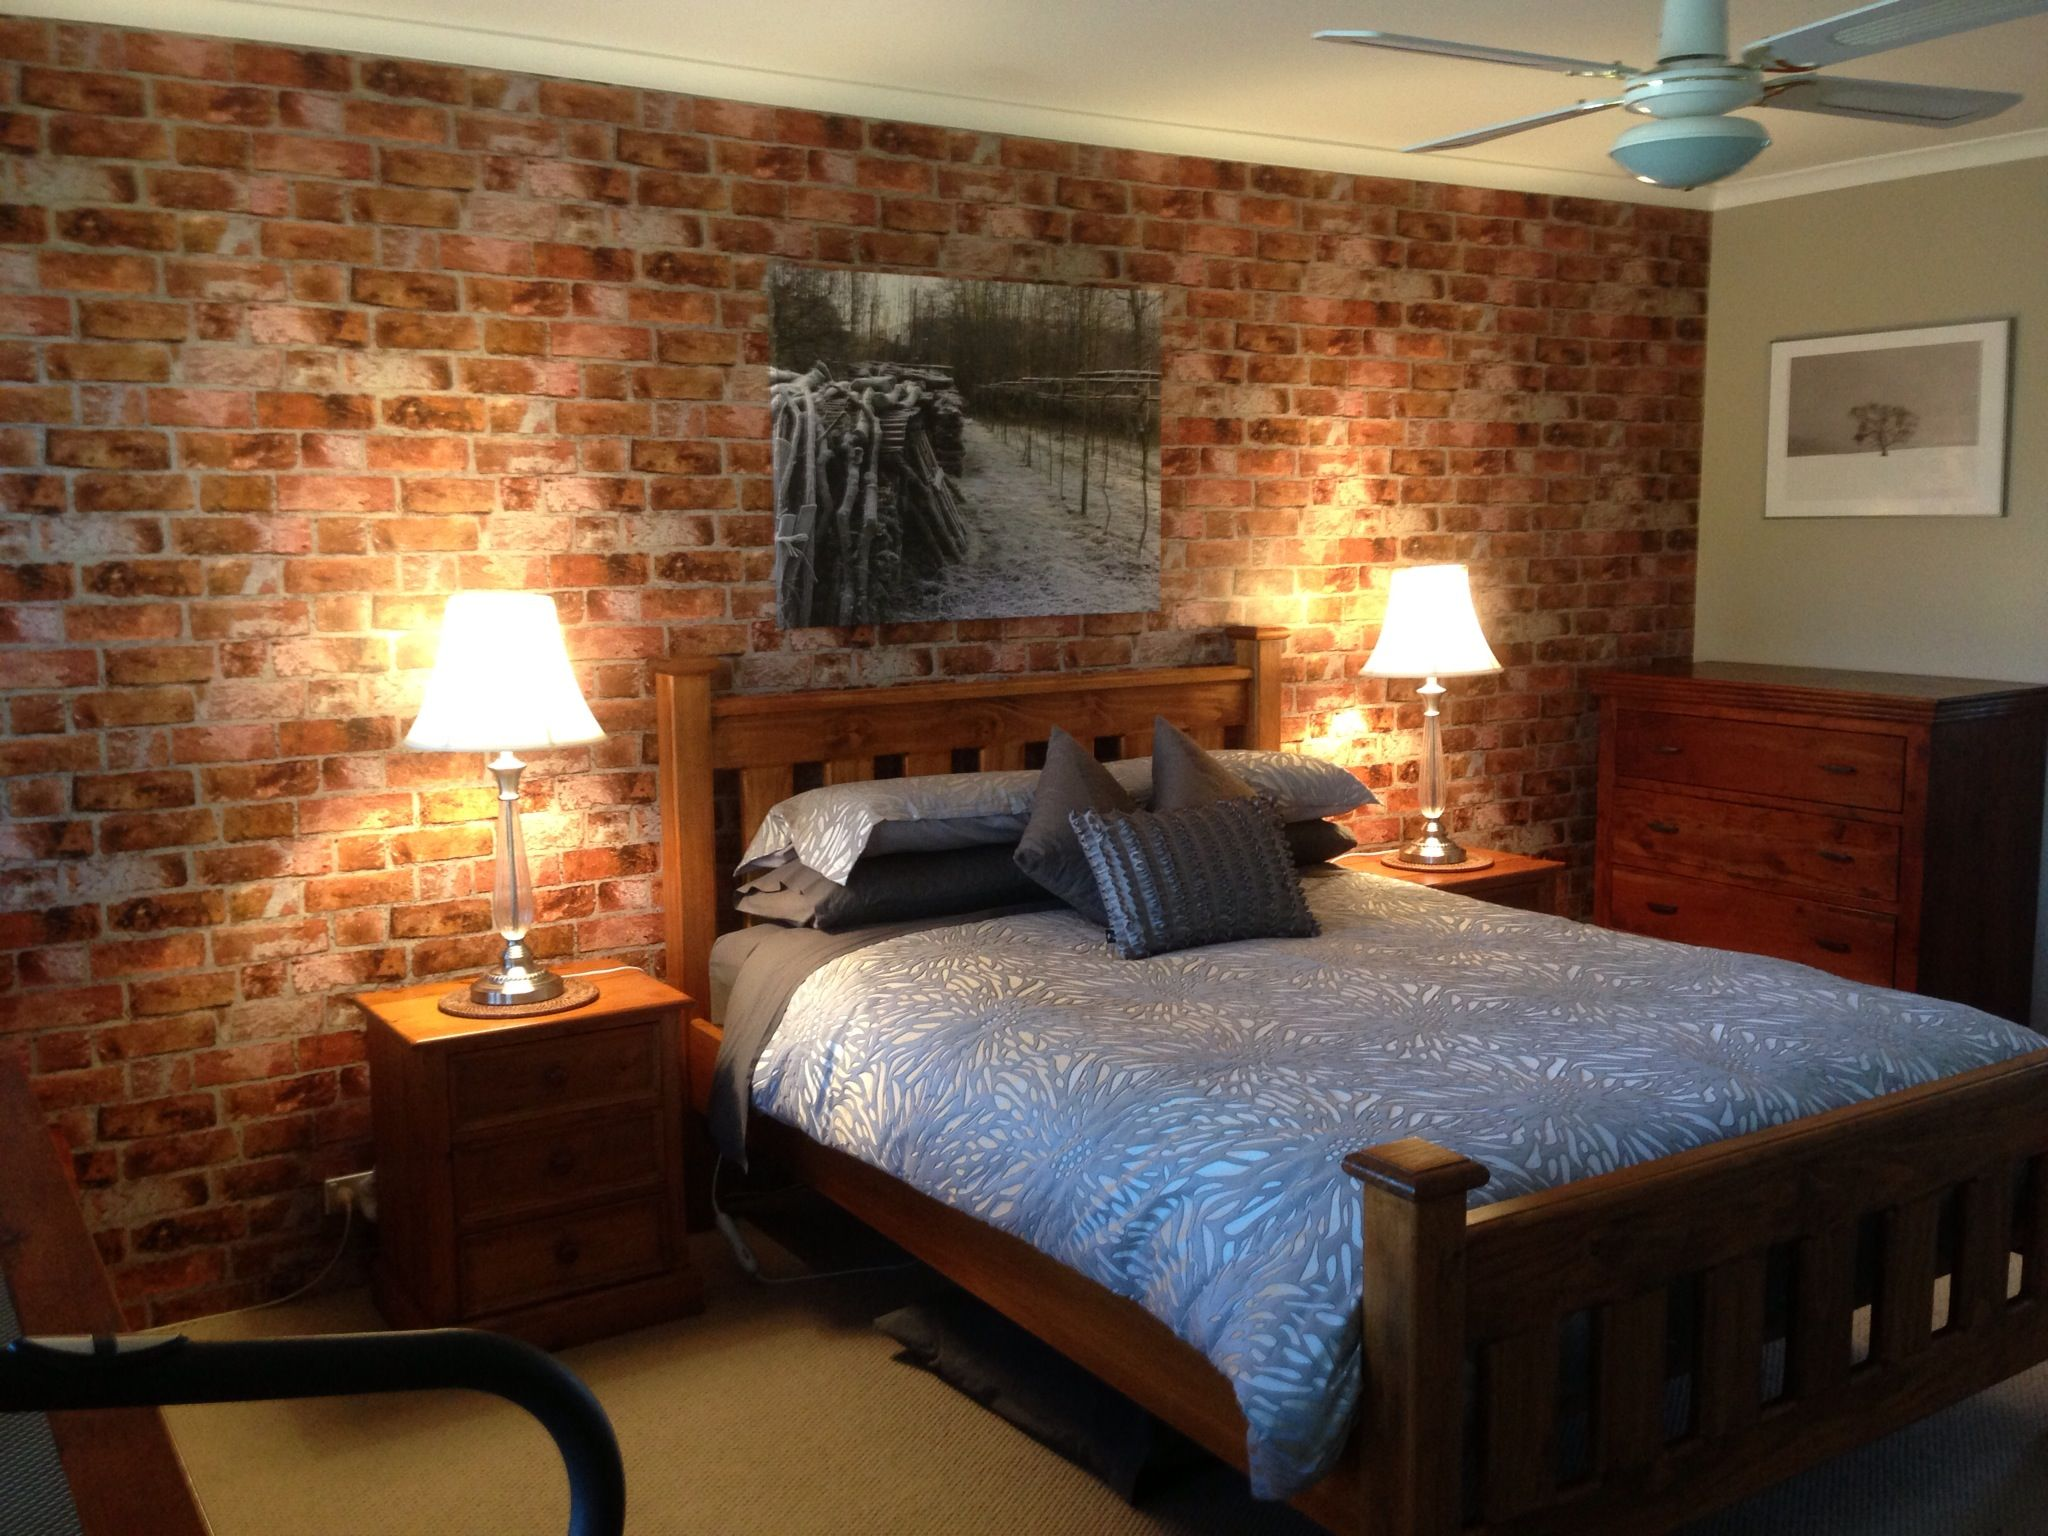 Wallpaper Accent Wall Bedroom Teaser Tuesday Brick Backsplash From Down Under Best